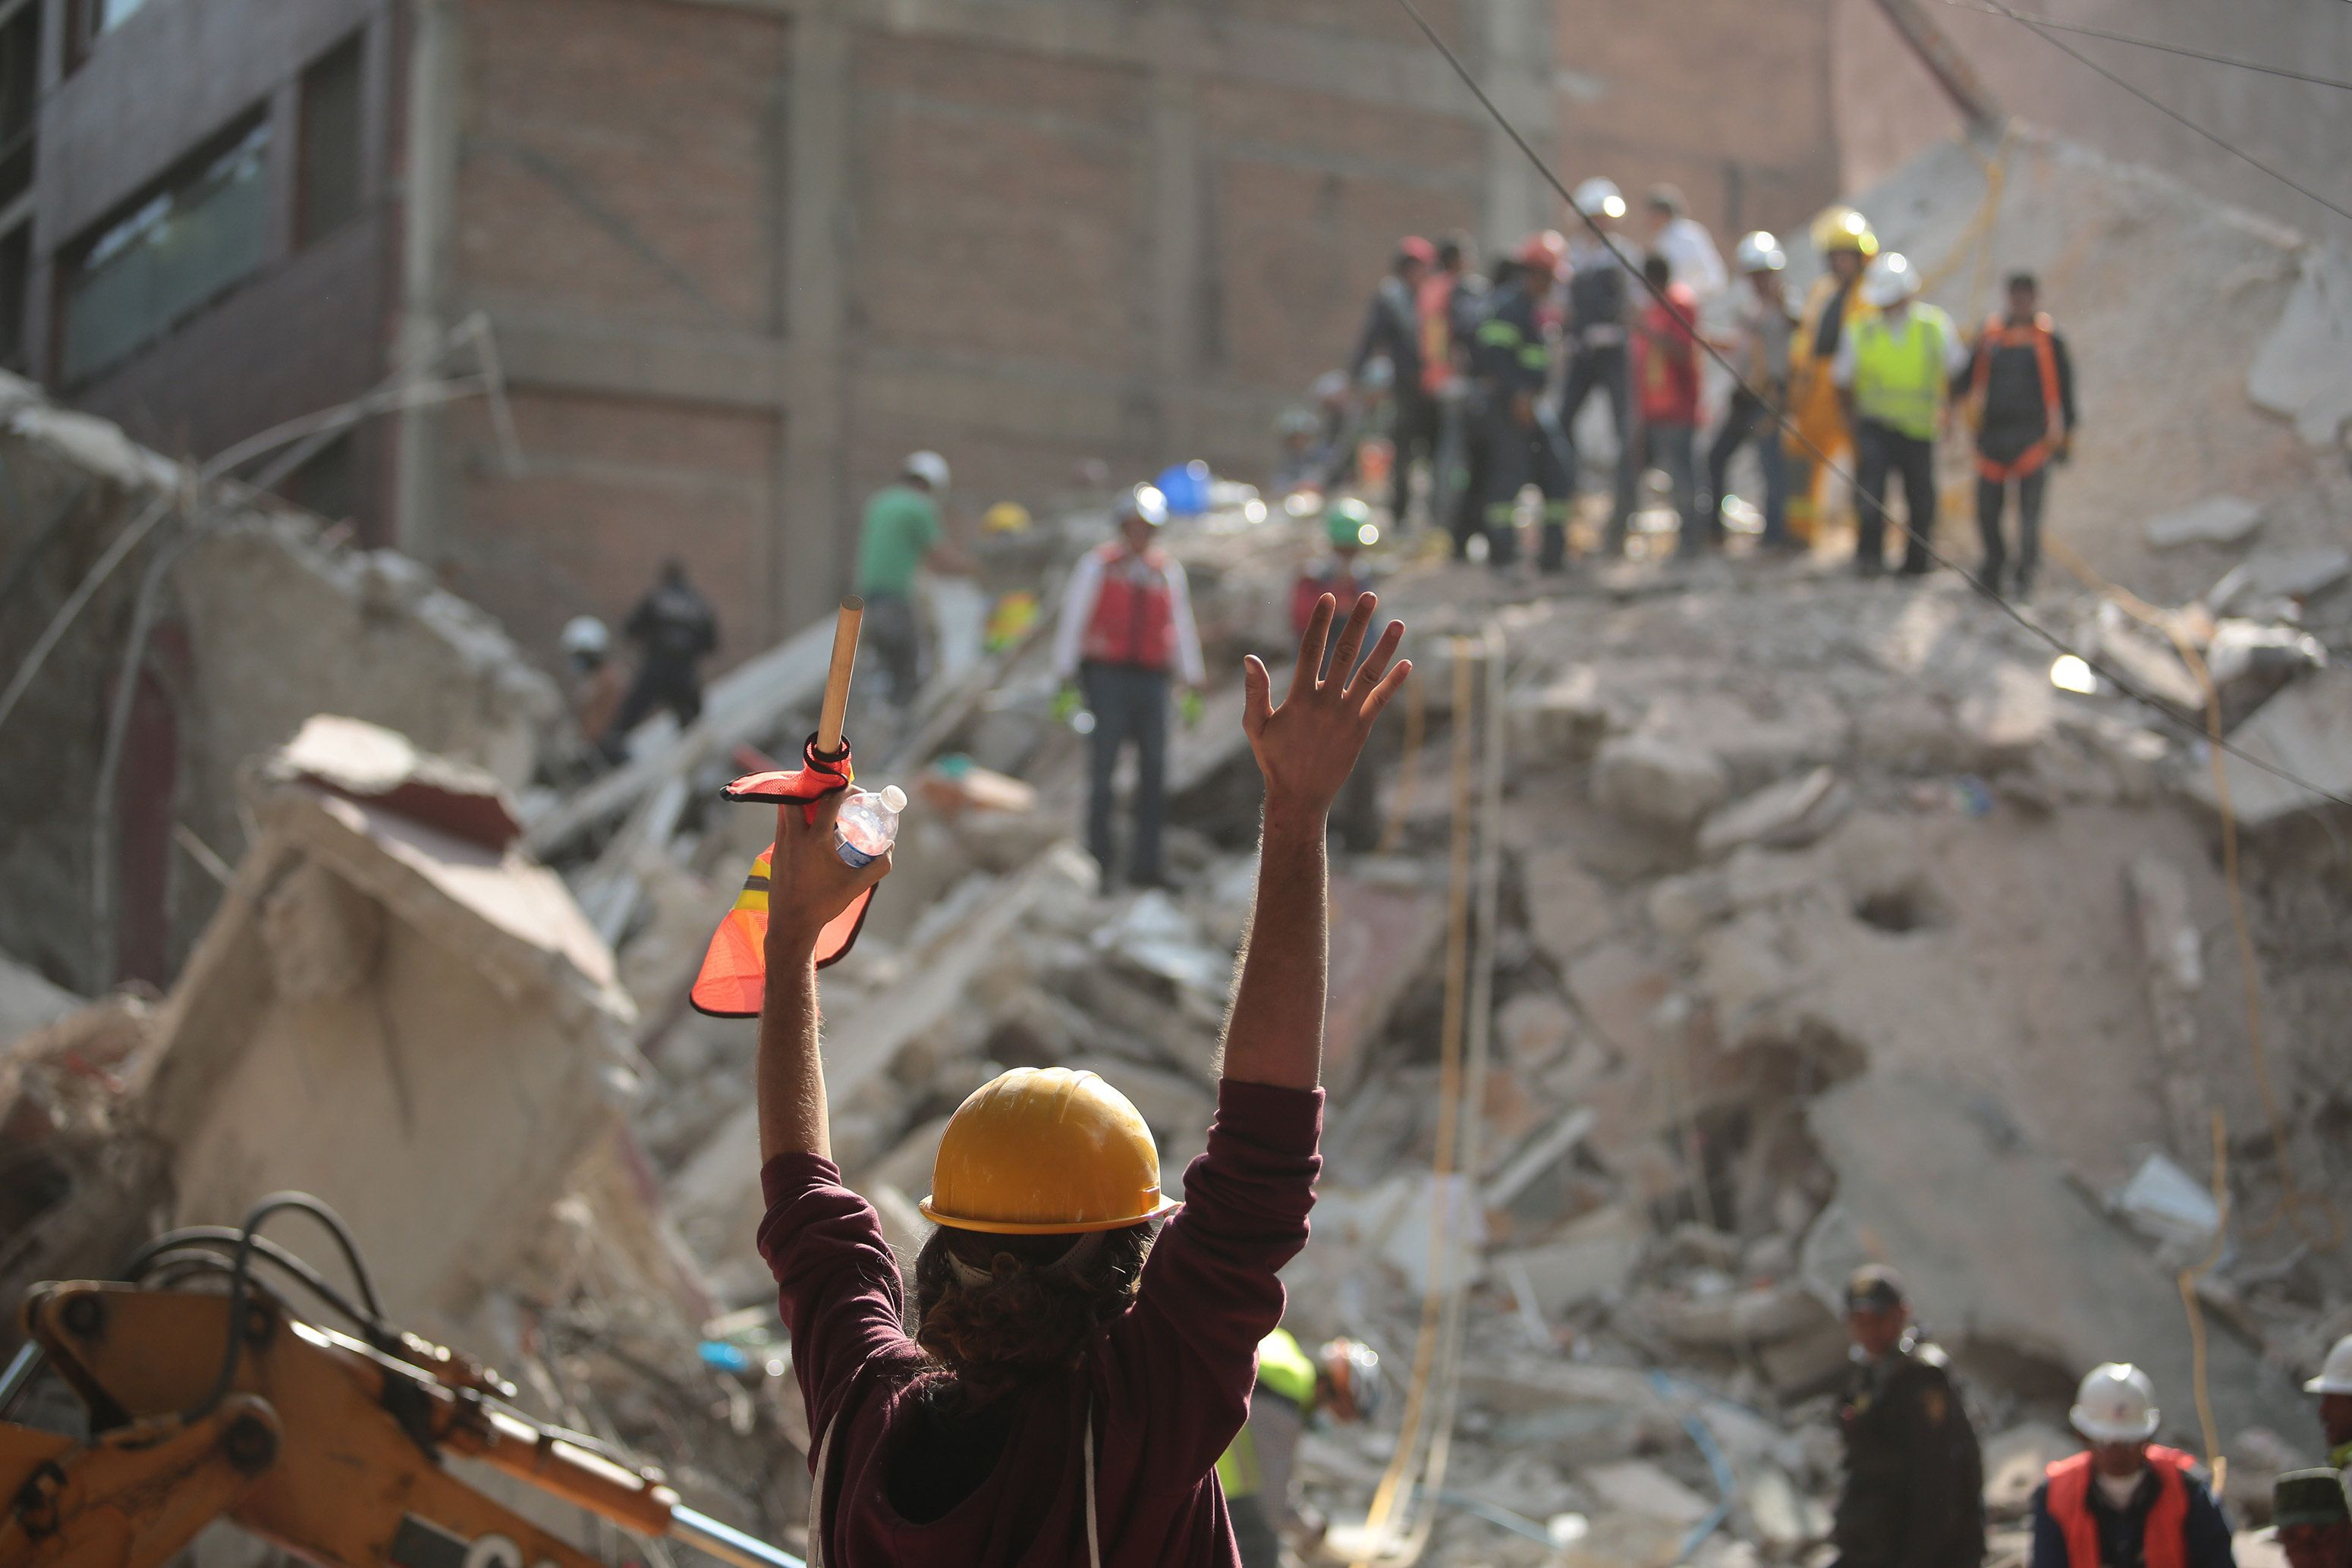 7.1 magnitude quake jolts Mexico: Here's what to do when disaster strikes